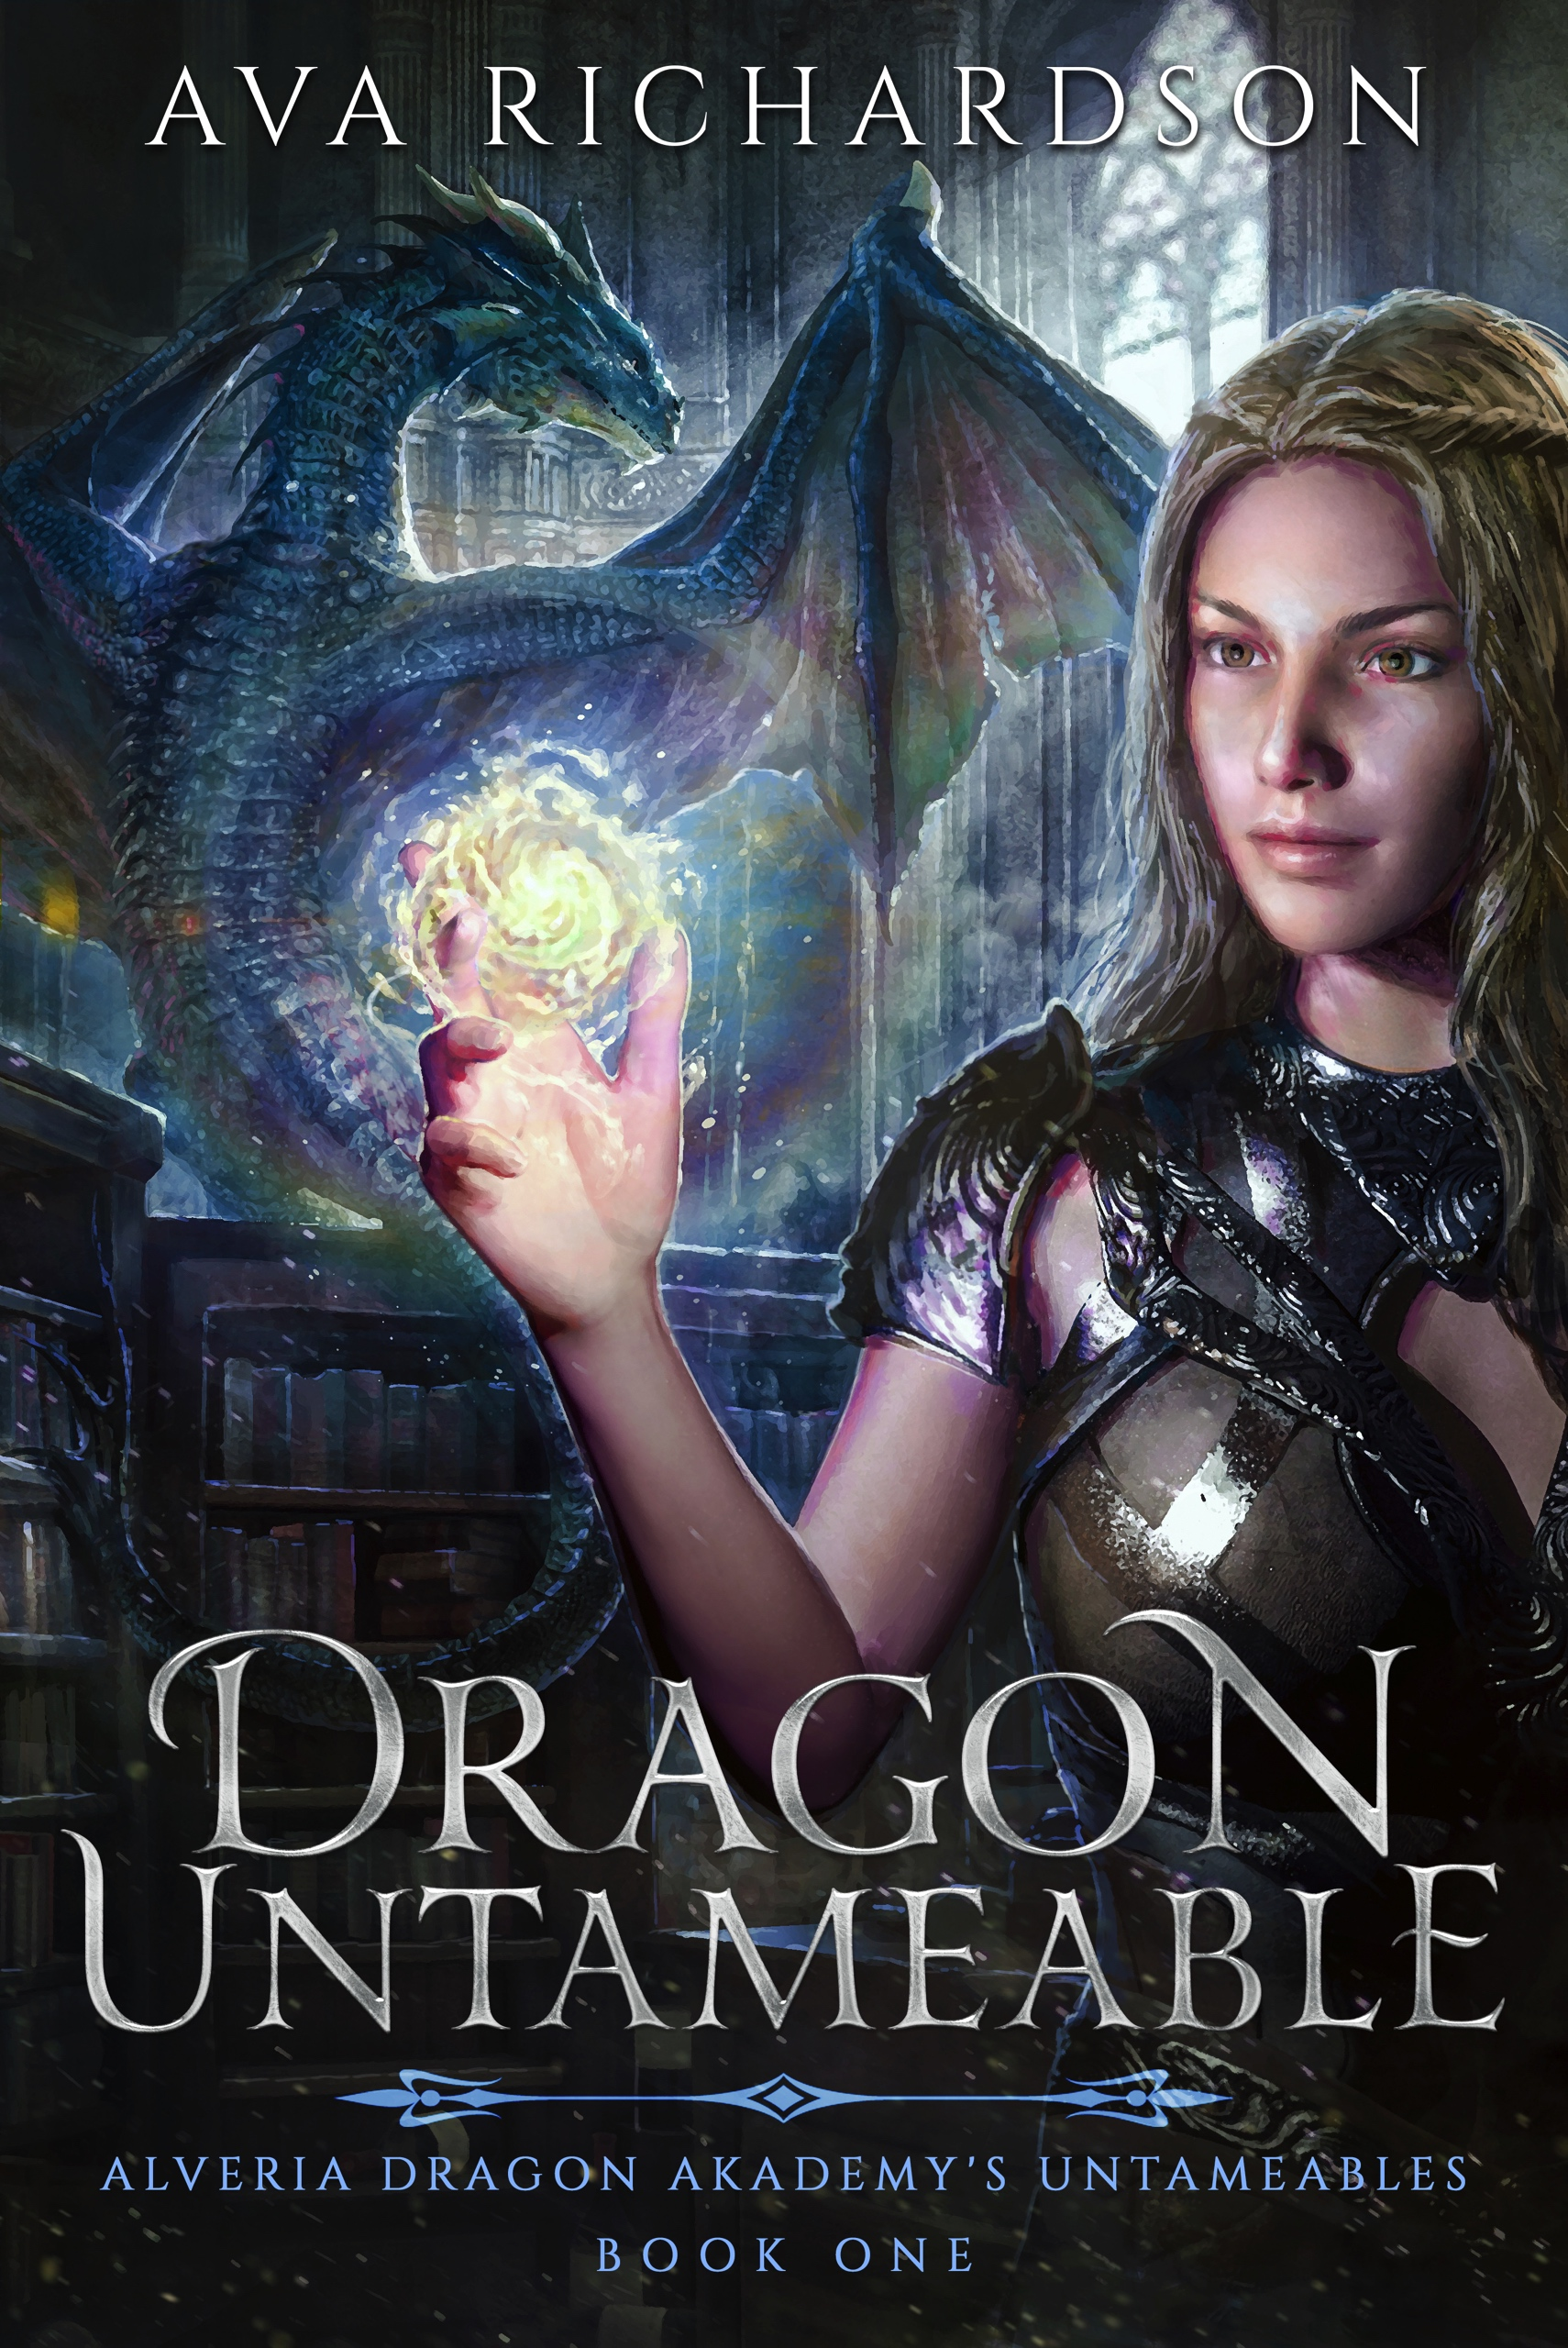 Alveria Dragon Akademy's Untameables Book 1